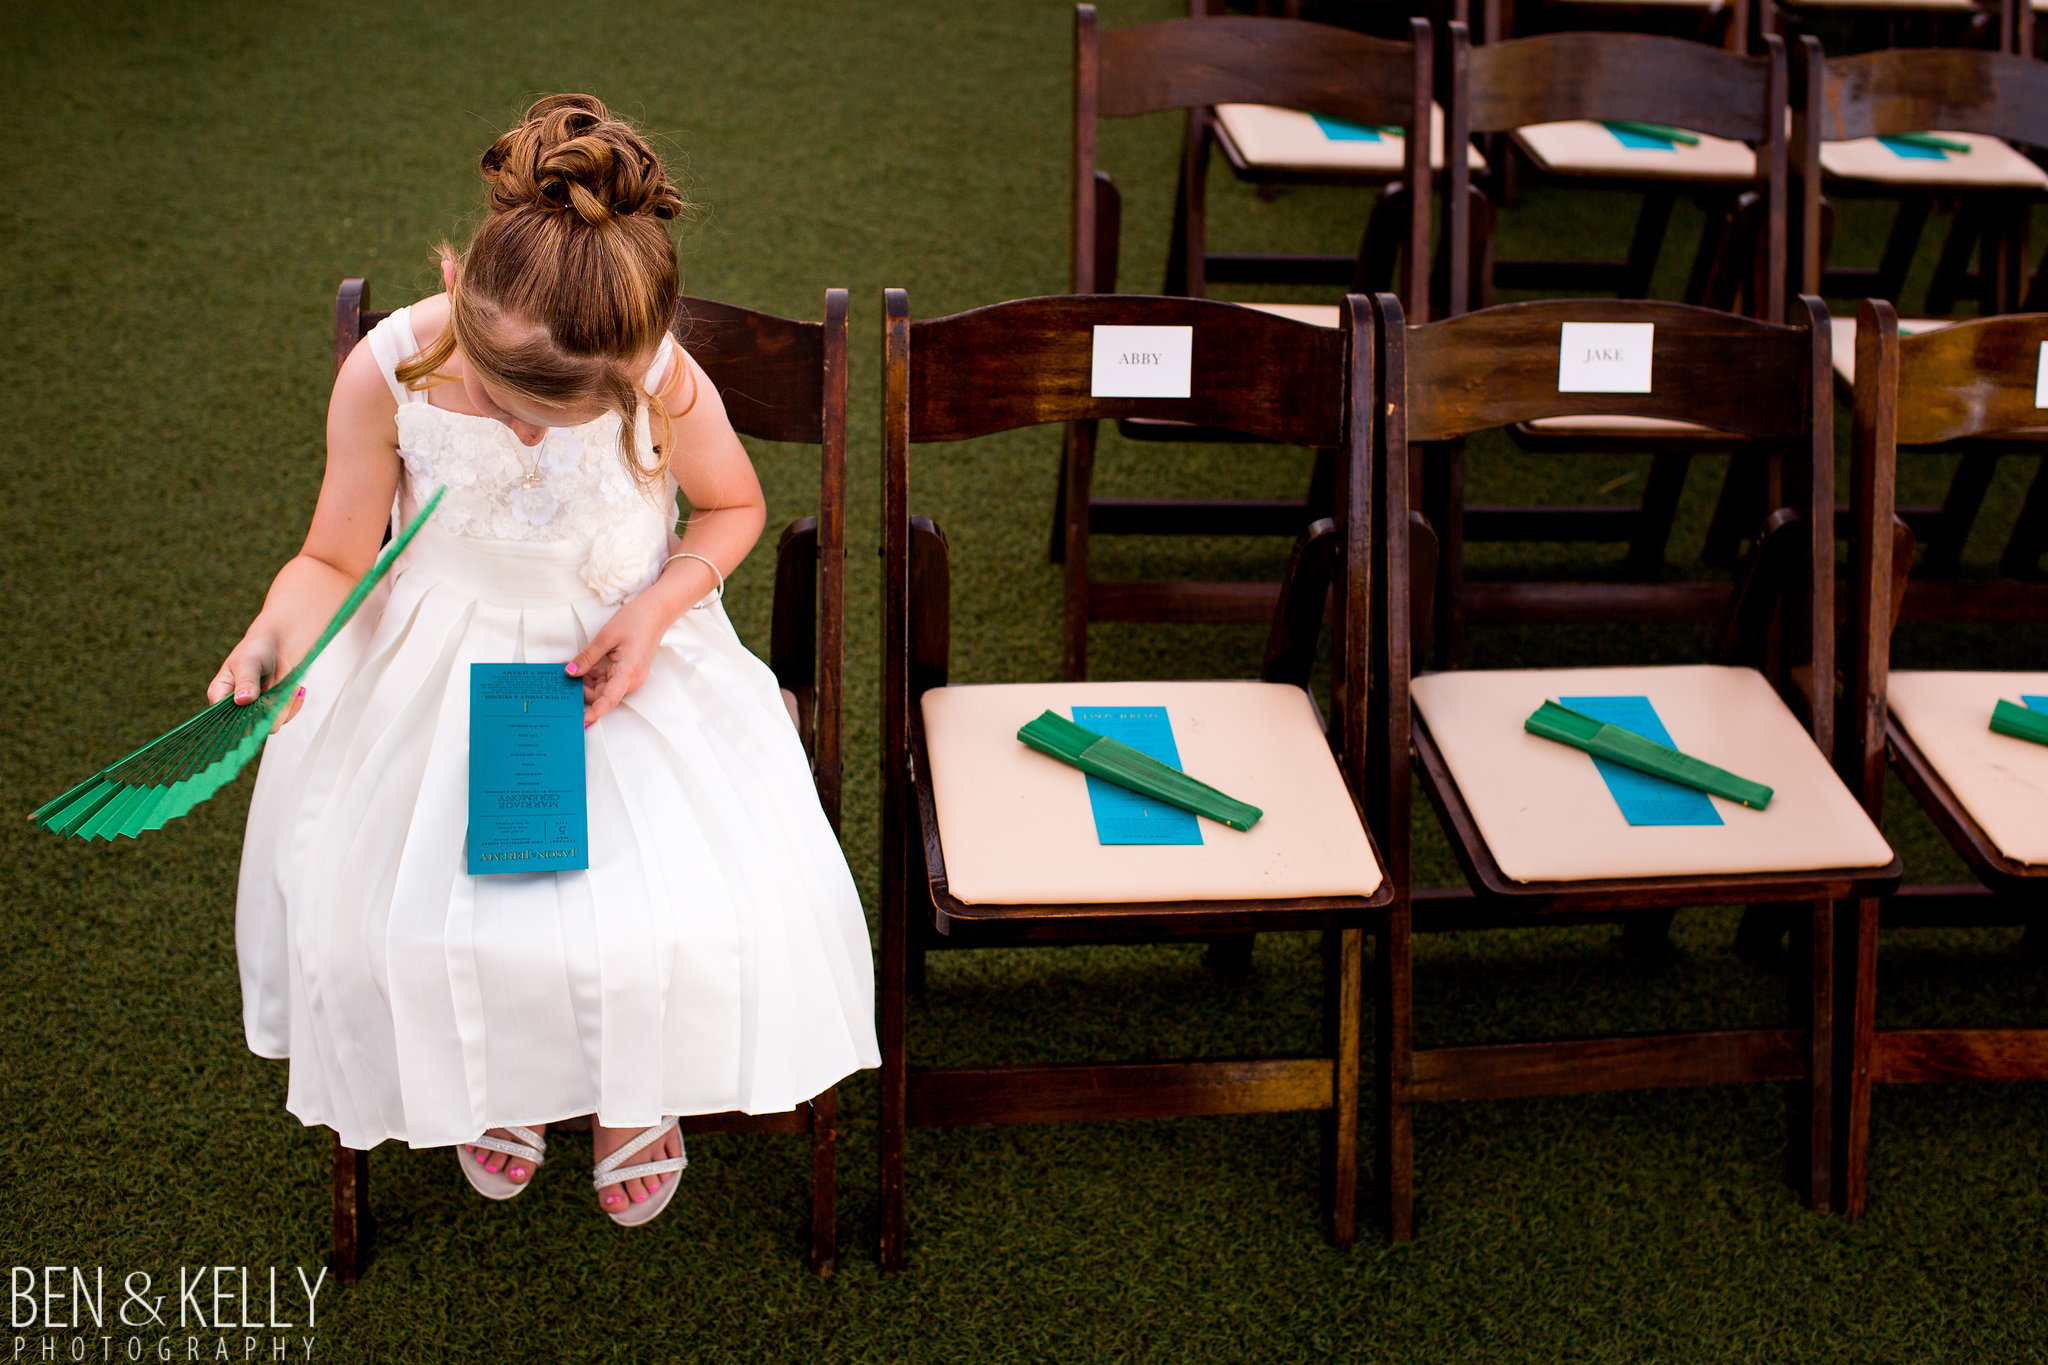 5 flower girl ceremony programs fans for guests outdoor wedding keep wedding guests cool flower girl dress Life Design Events photo by Ben and Kelly Photography.jpg